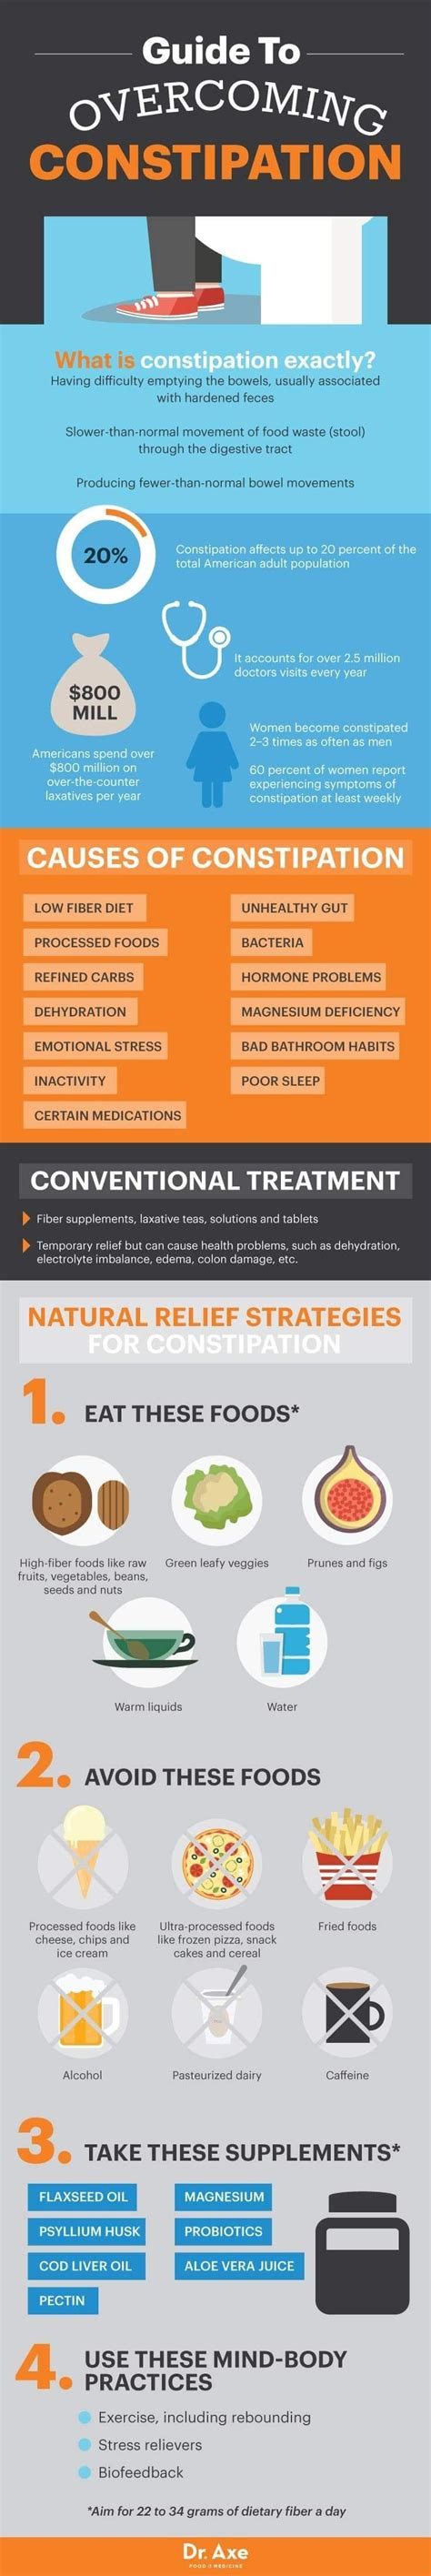 Https Www Linkedin Pulse Dr Axes Detox Drink Lori Gillis Rn 25 best ideas about constipation relief on